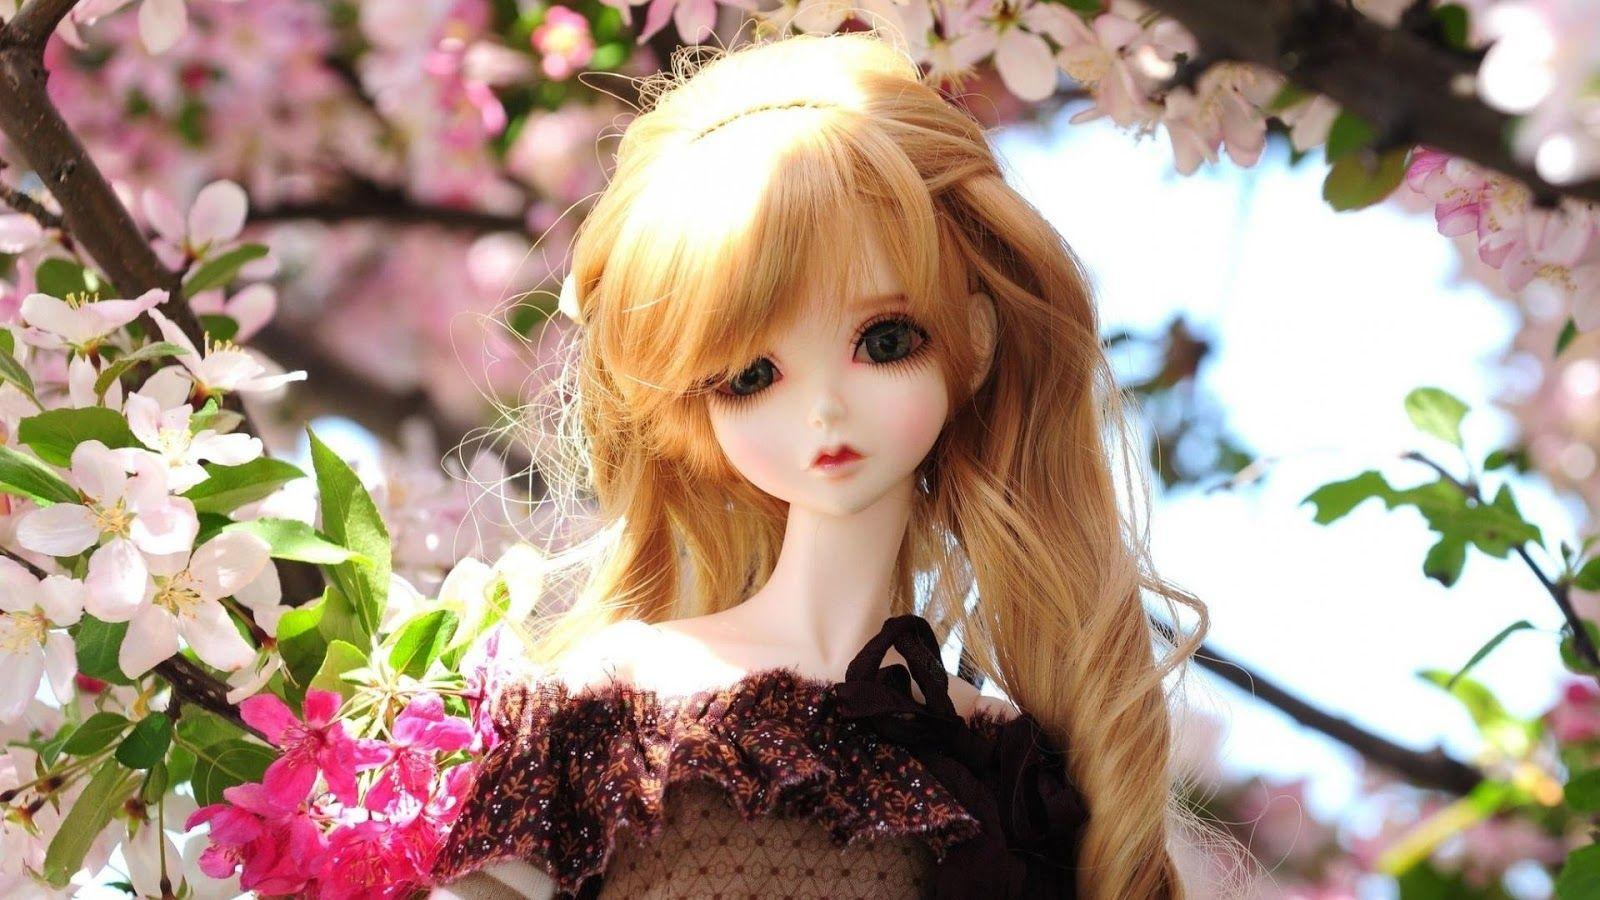 Dolls wallpapers wallpaper cave - Cute barbie doll wallpaper hd ...